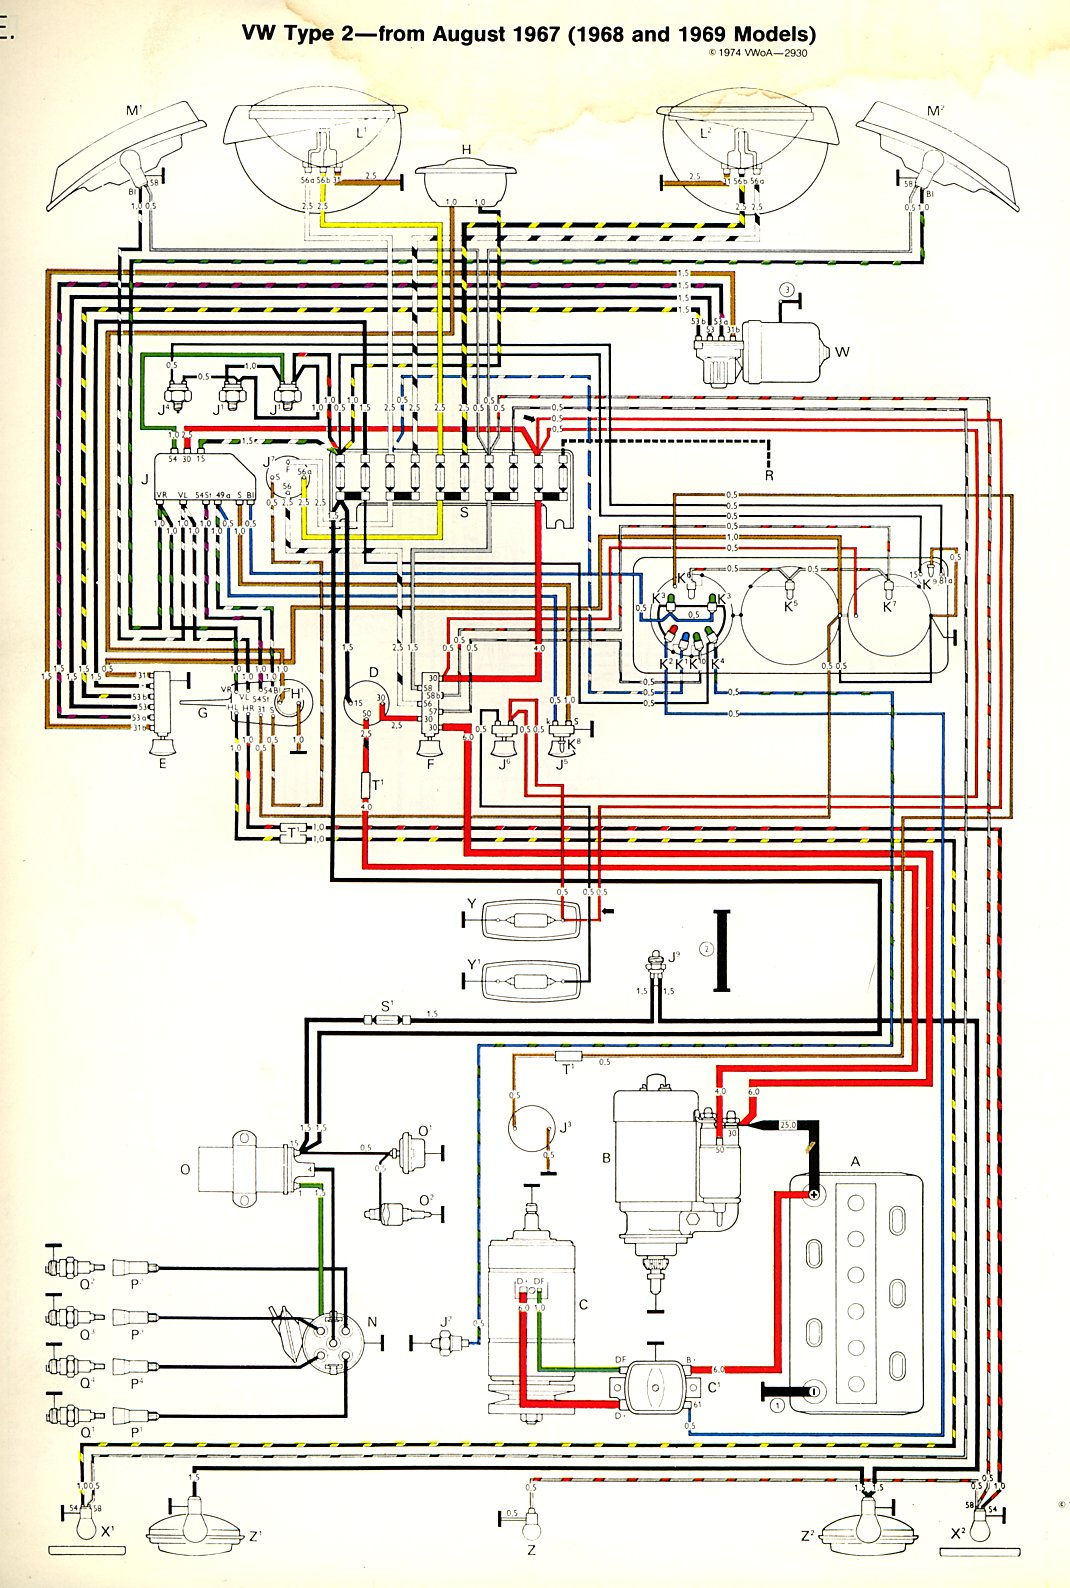 thesamba com type 2 wiring diagrams rh thesamba com subaru vanagon wiring diagram 1987 vanagon wiring diagram